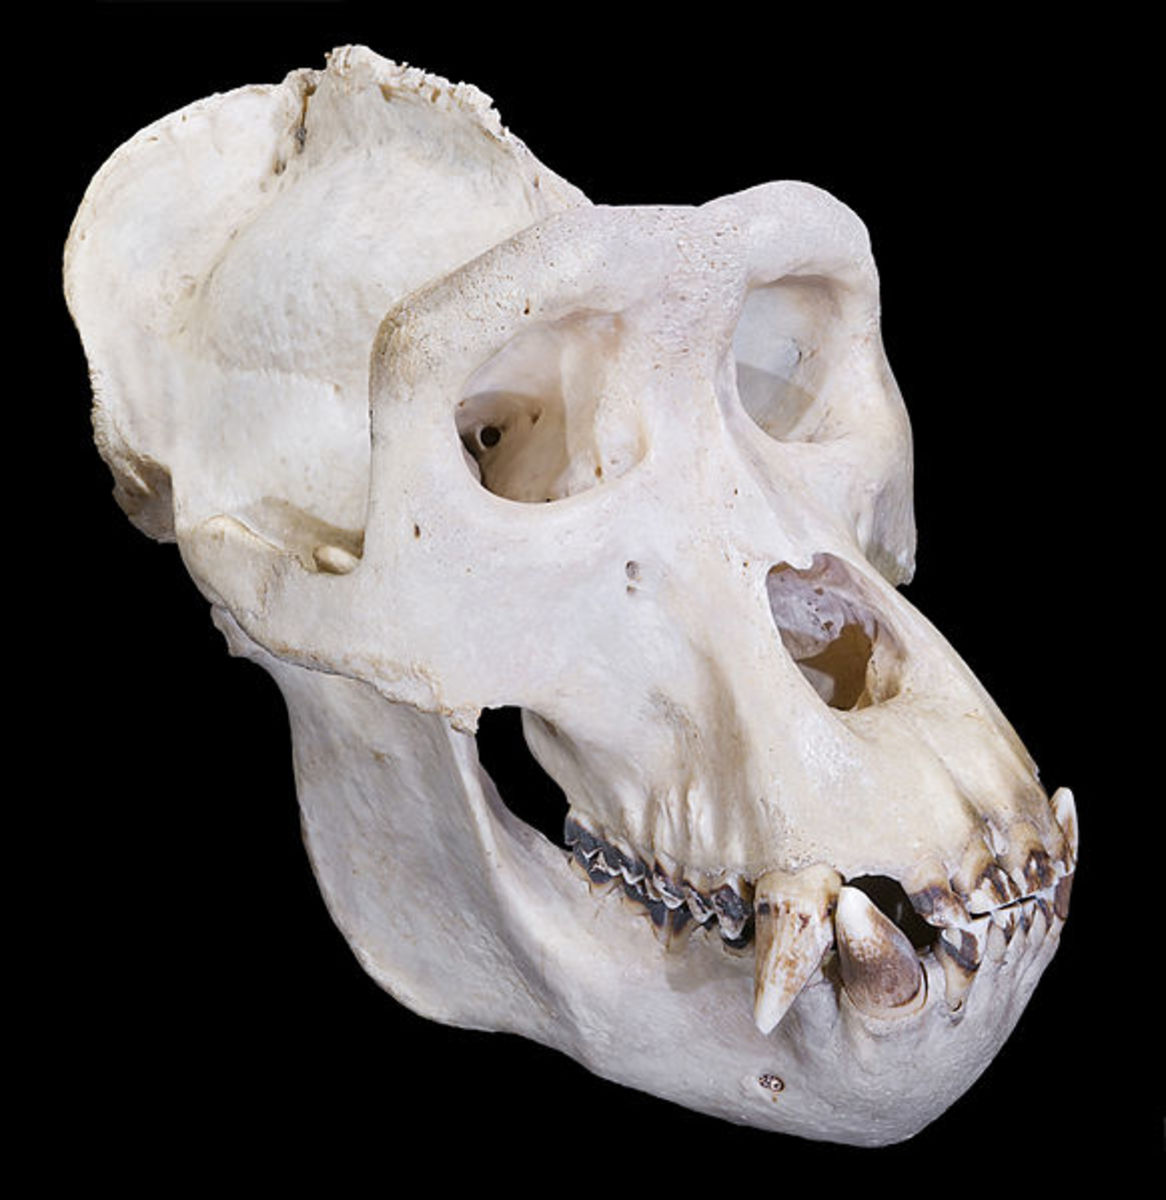 Gorilla skulls like this one aren't common in the wild, but Bigfoot bones are unheard of.  One find could prove Bigfoot is real once and for all.